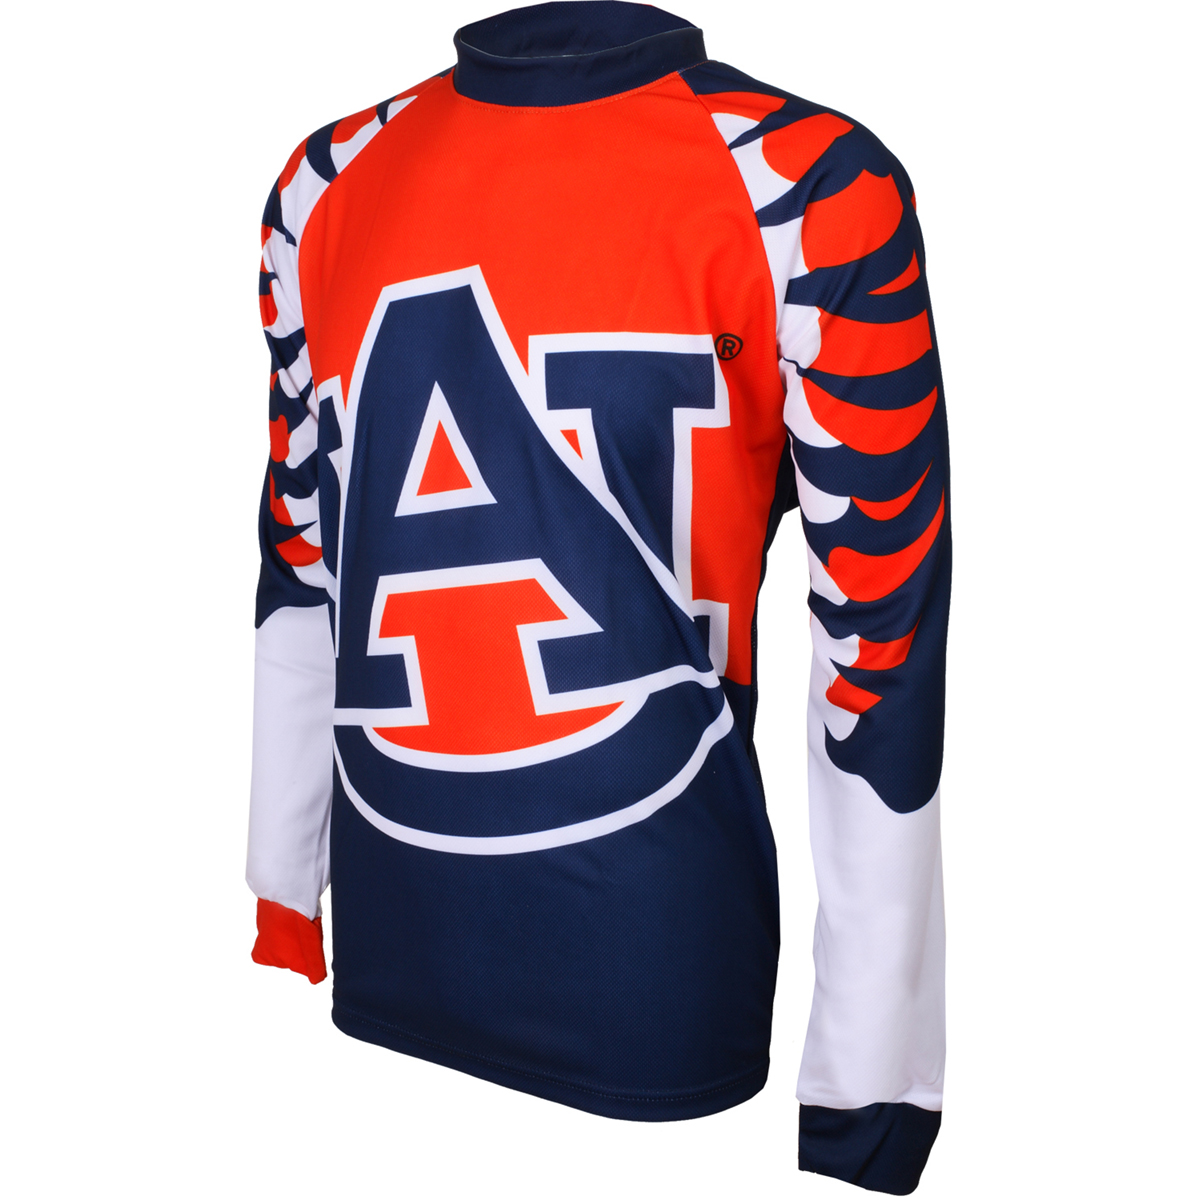 Adrenaline Promotions Auburn University Tigers Long Sleeve Mountain Bike Jersey